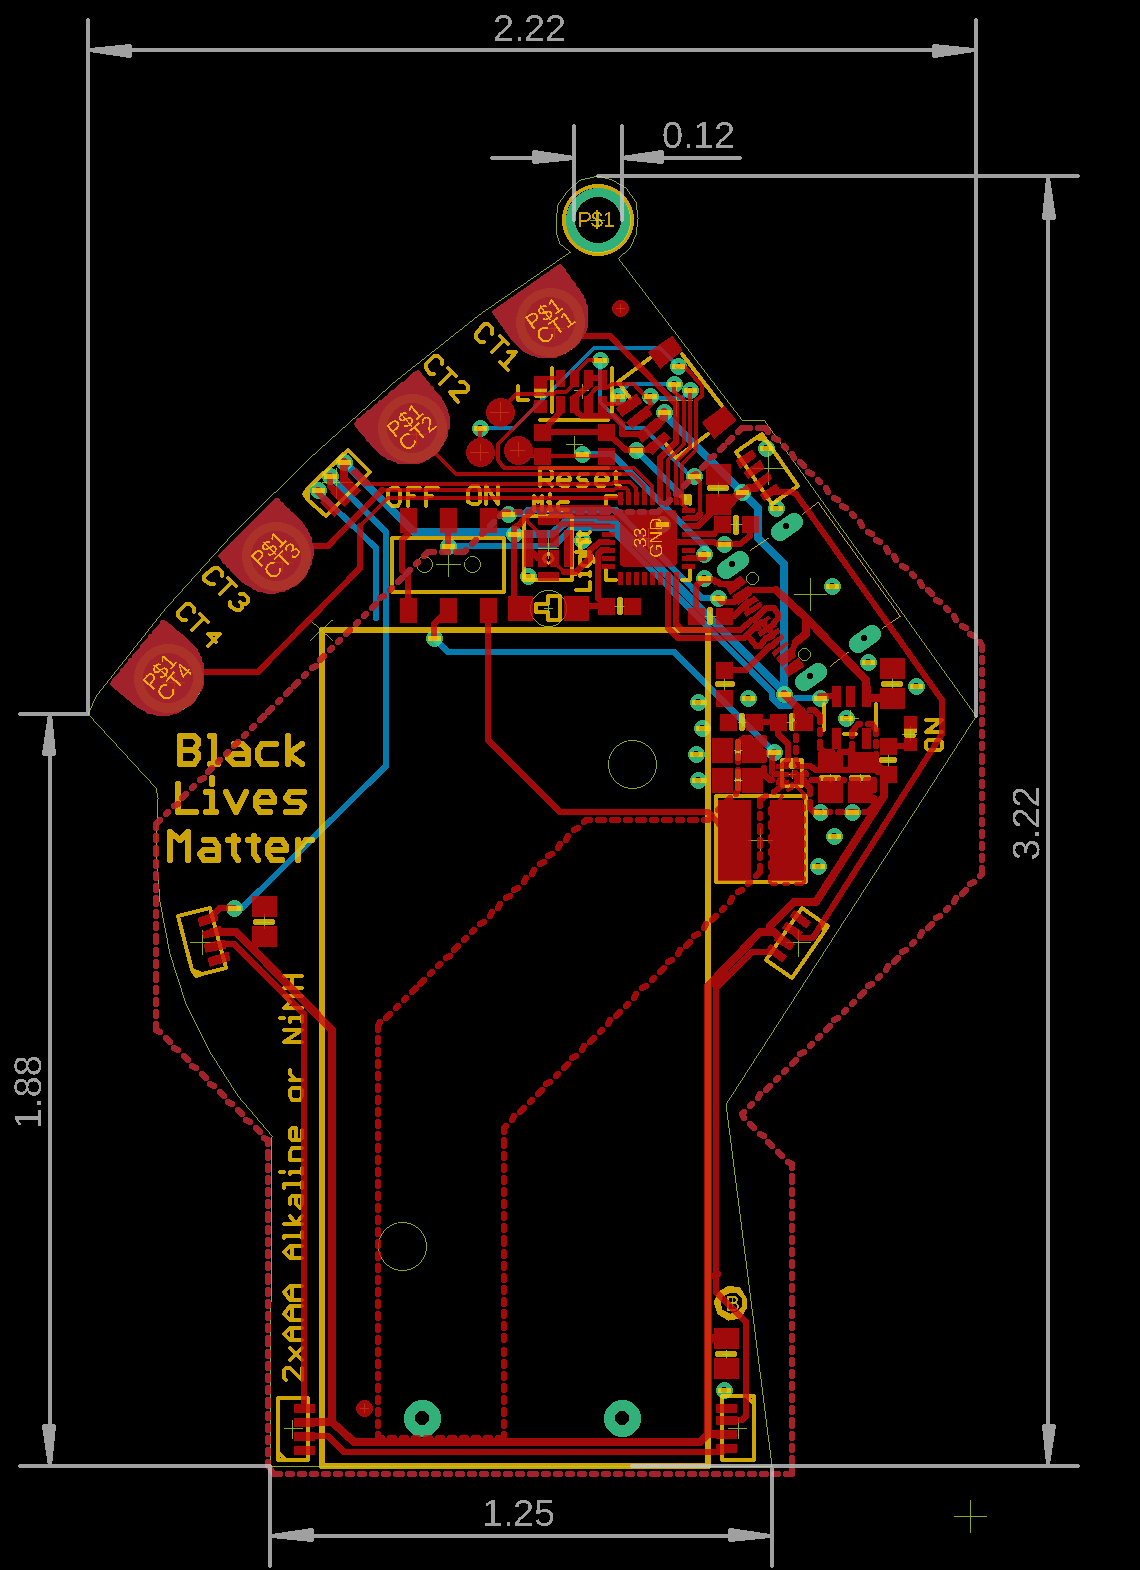 adafruit_products_BLM_Fab_print.png